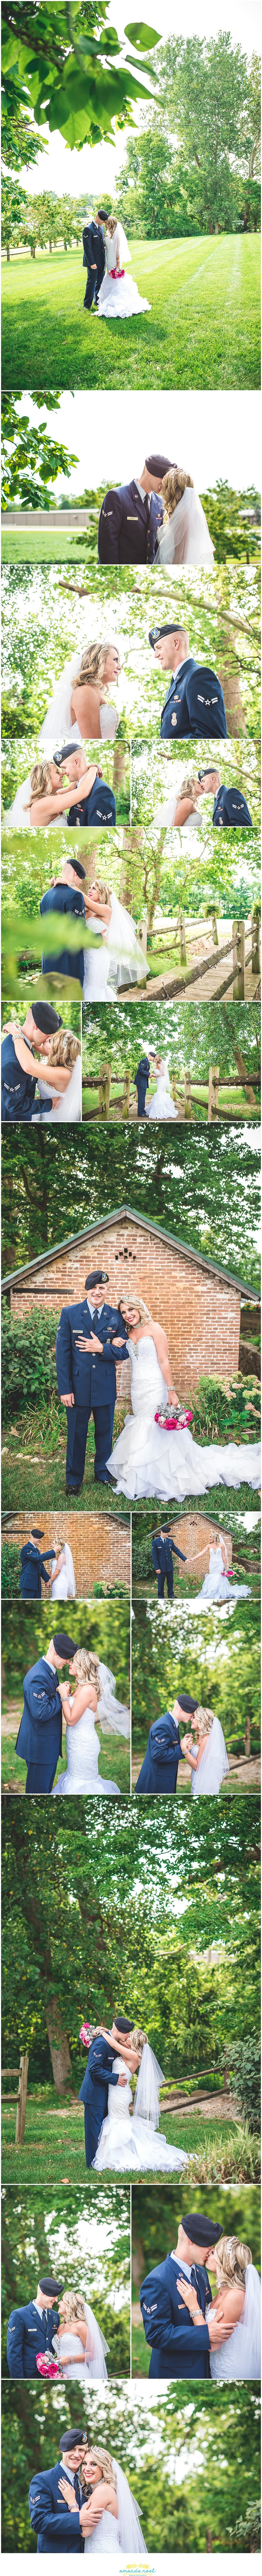 Springfield Ohio wedding couple portraits